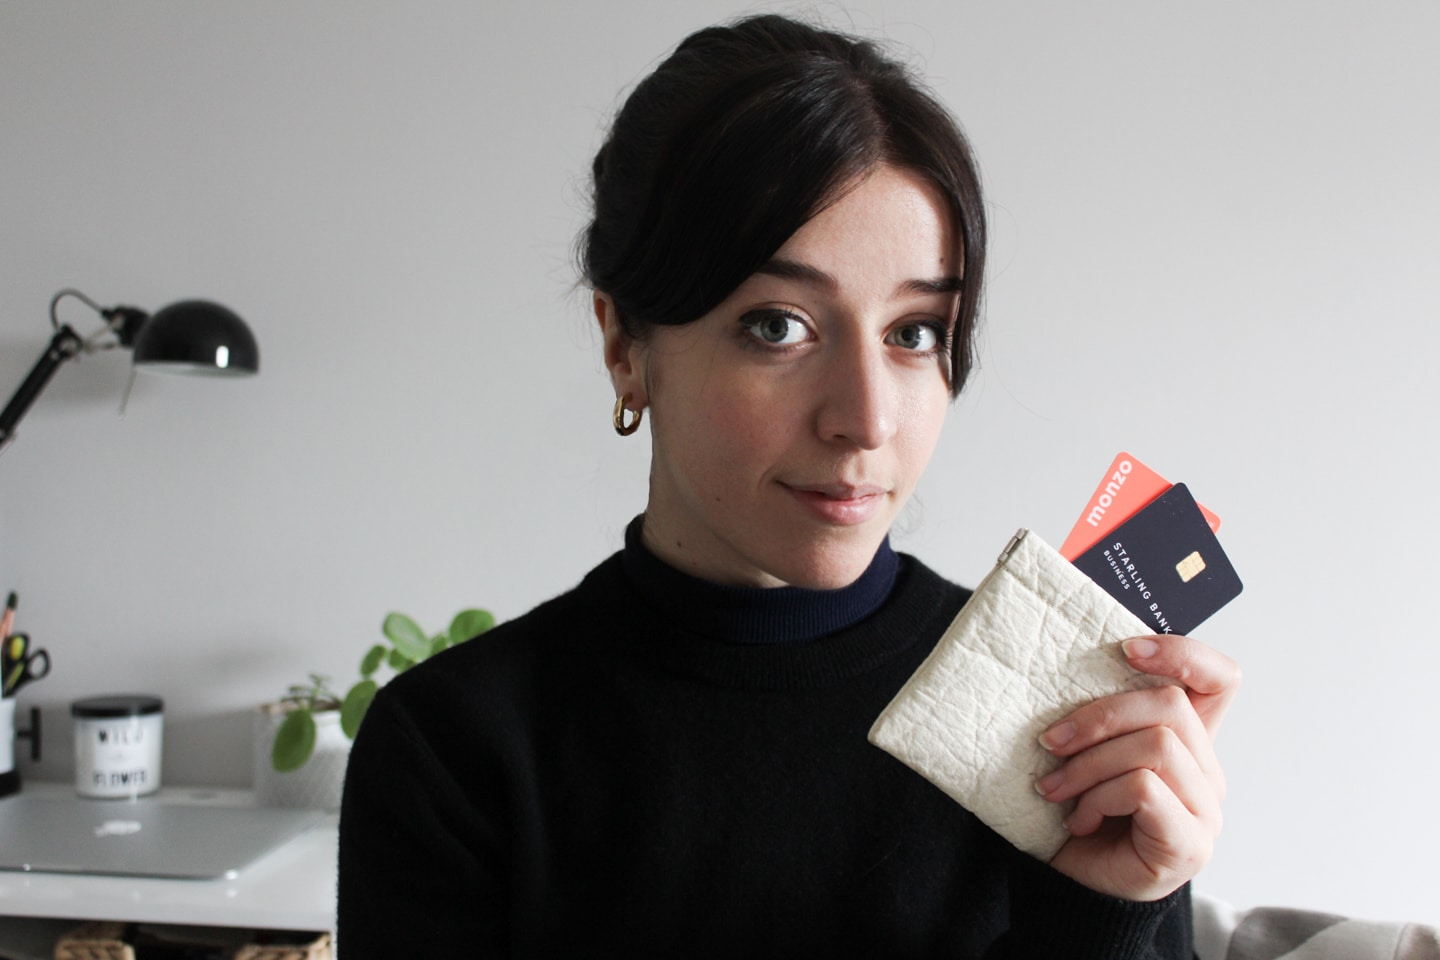 Besma holding pinatex purse with bank cards